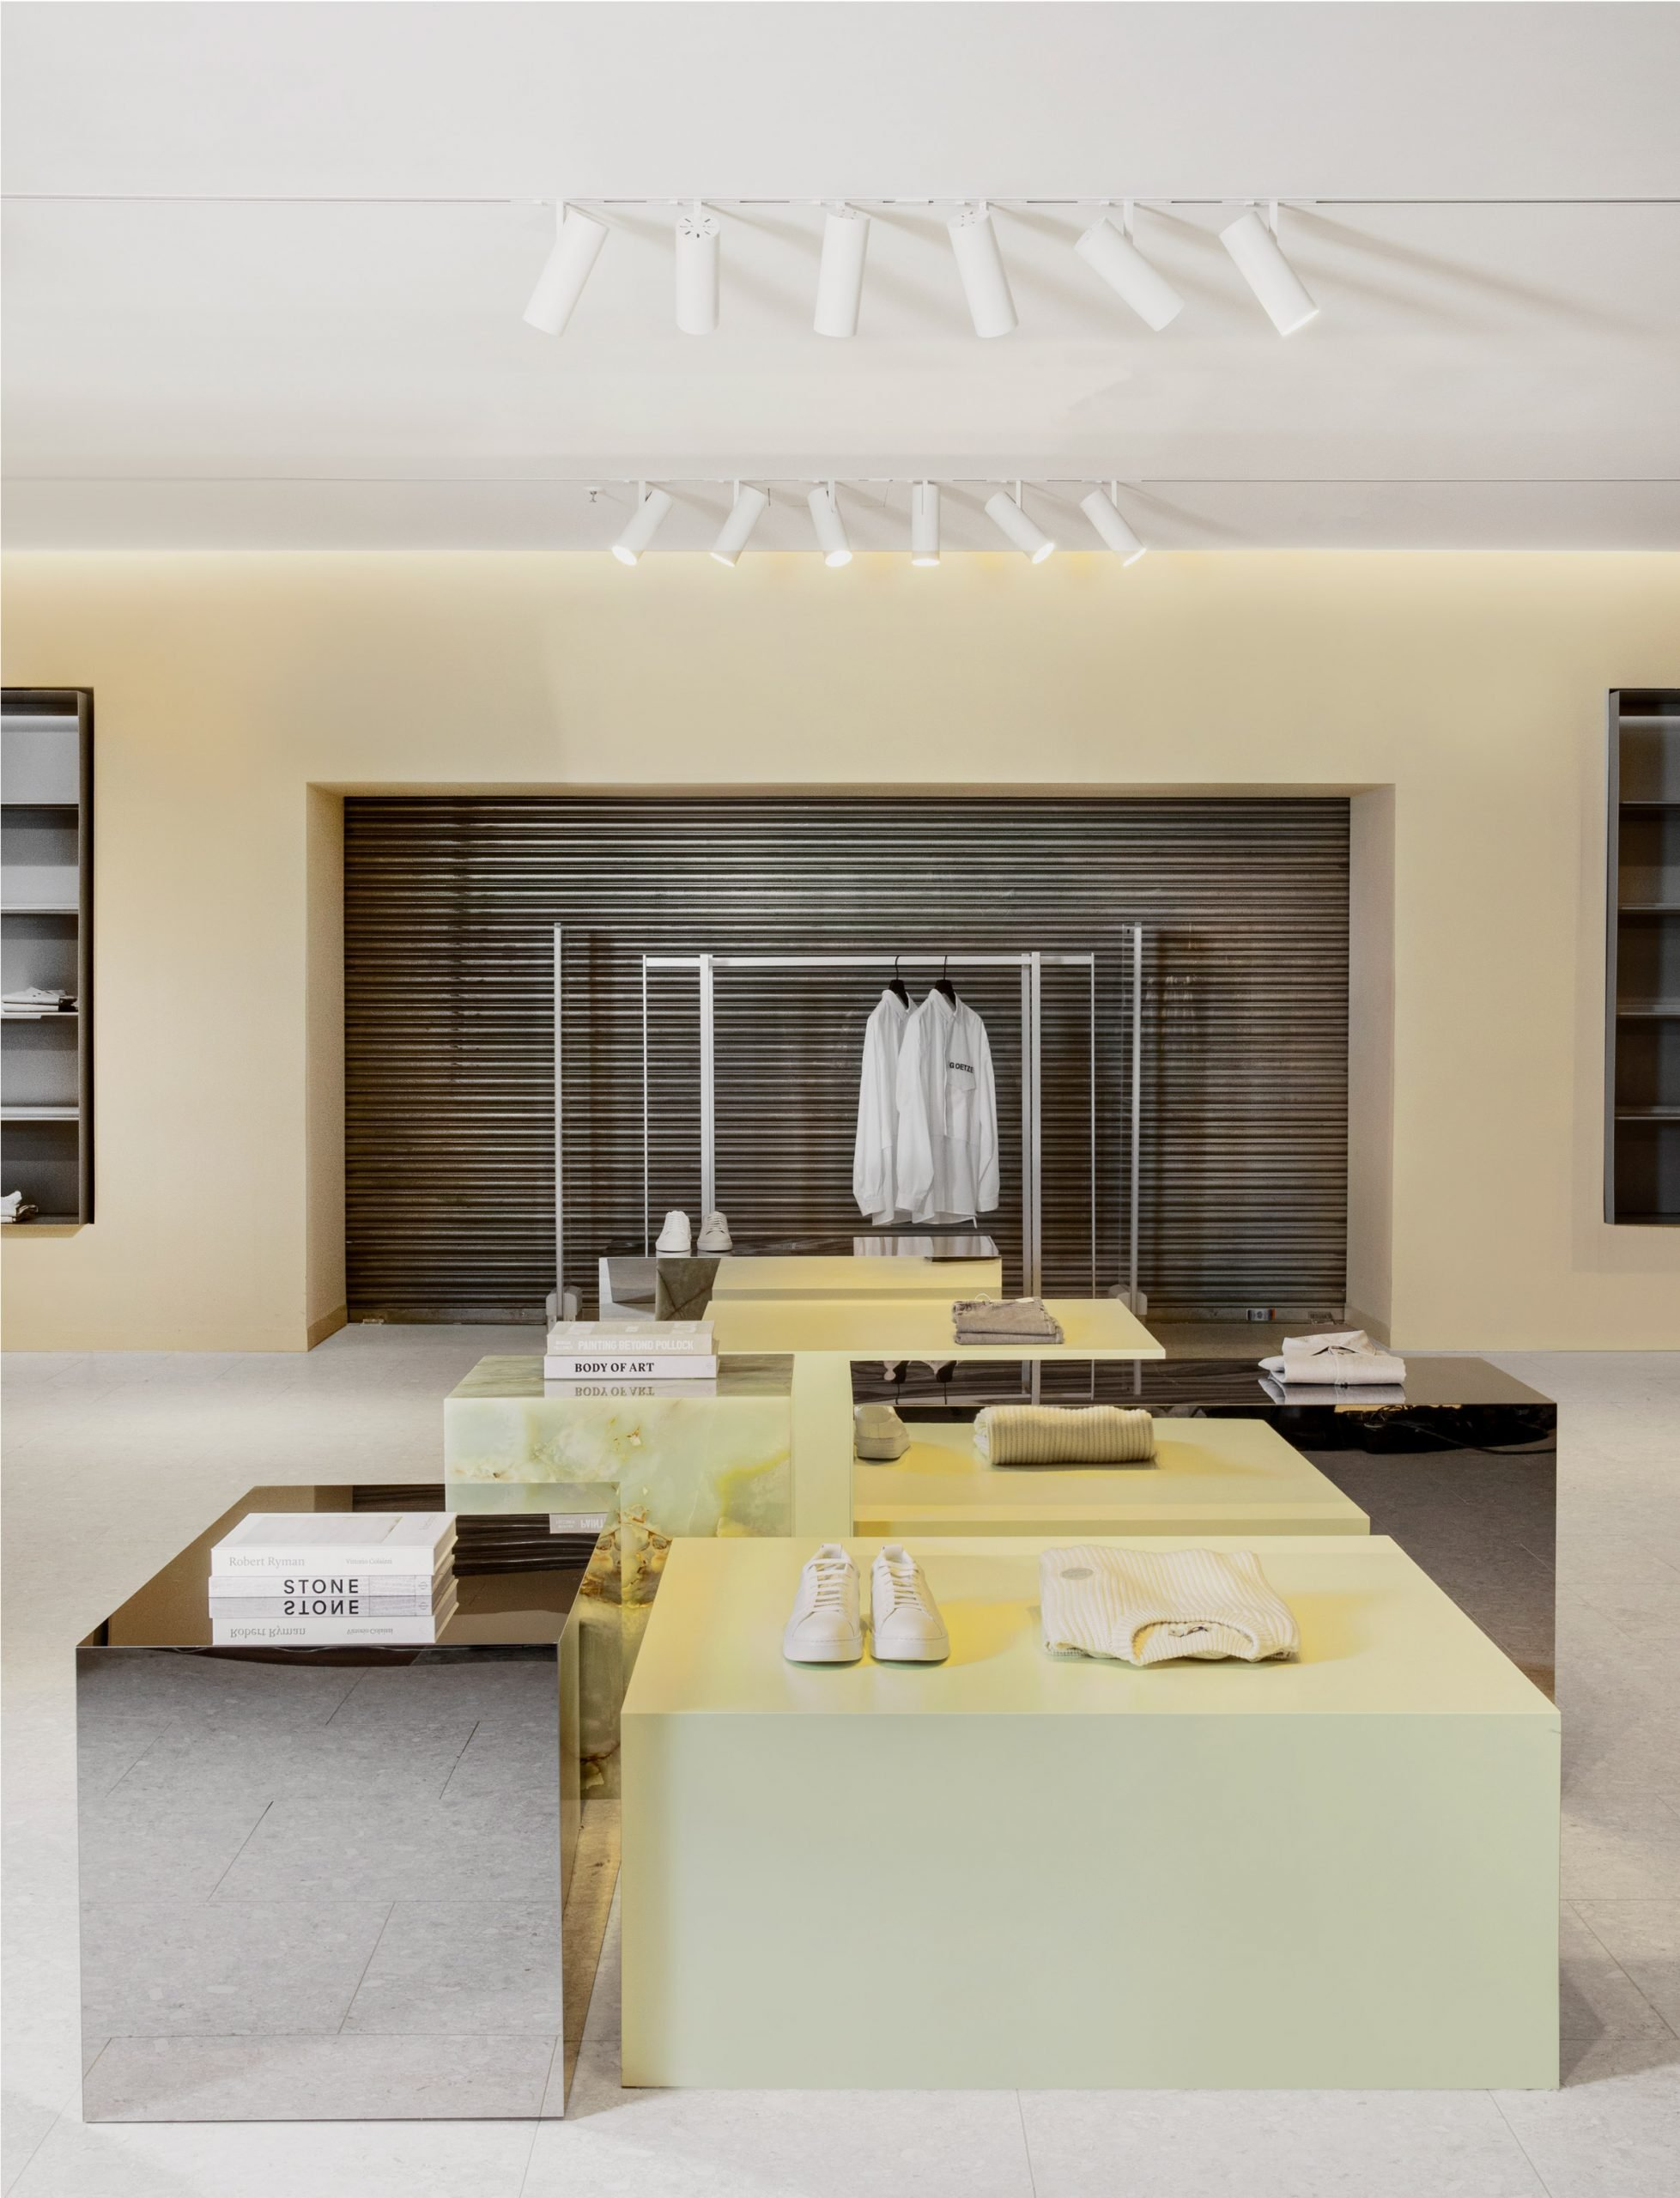 Menswear department in Alsterhaus, Hamburg designed by Norm Architects